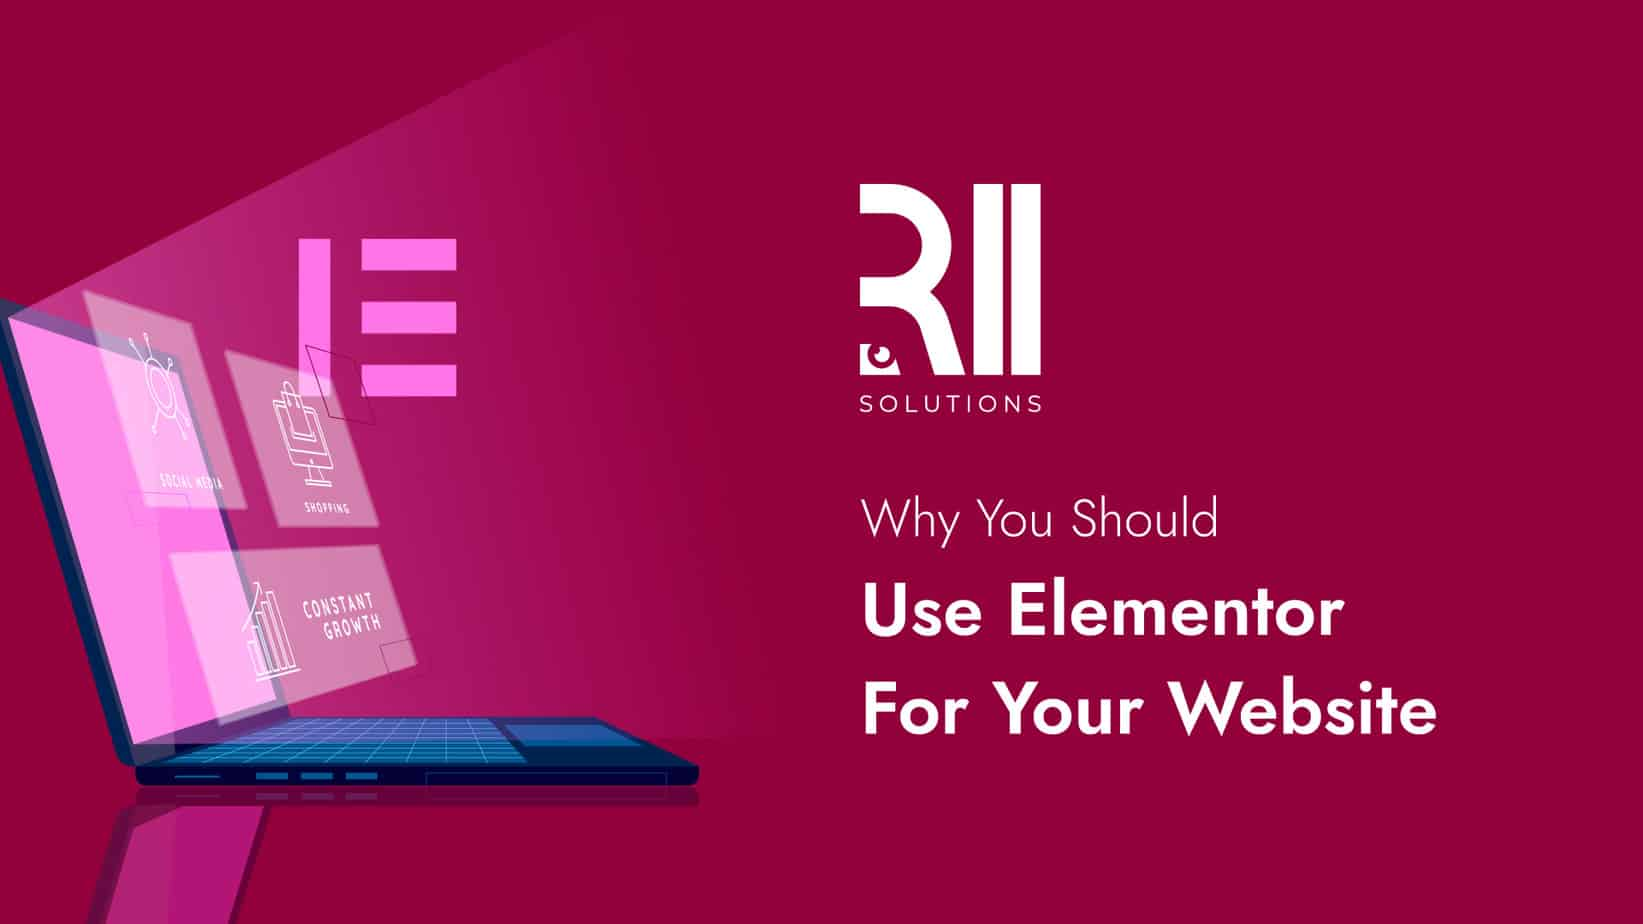 Why You Should Use Elementor For Your Website